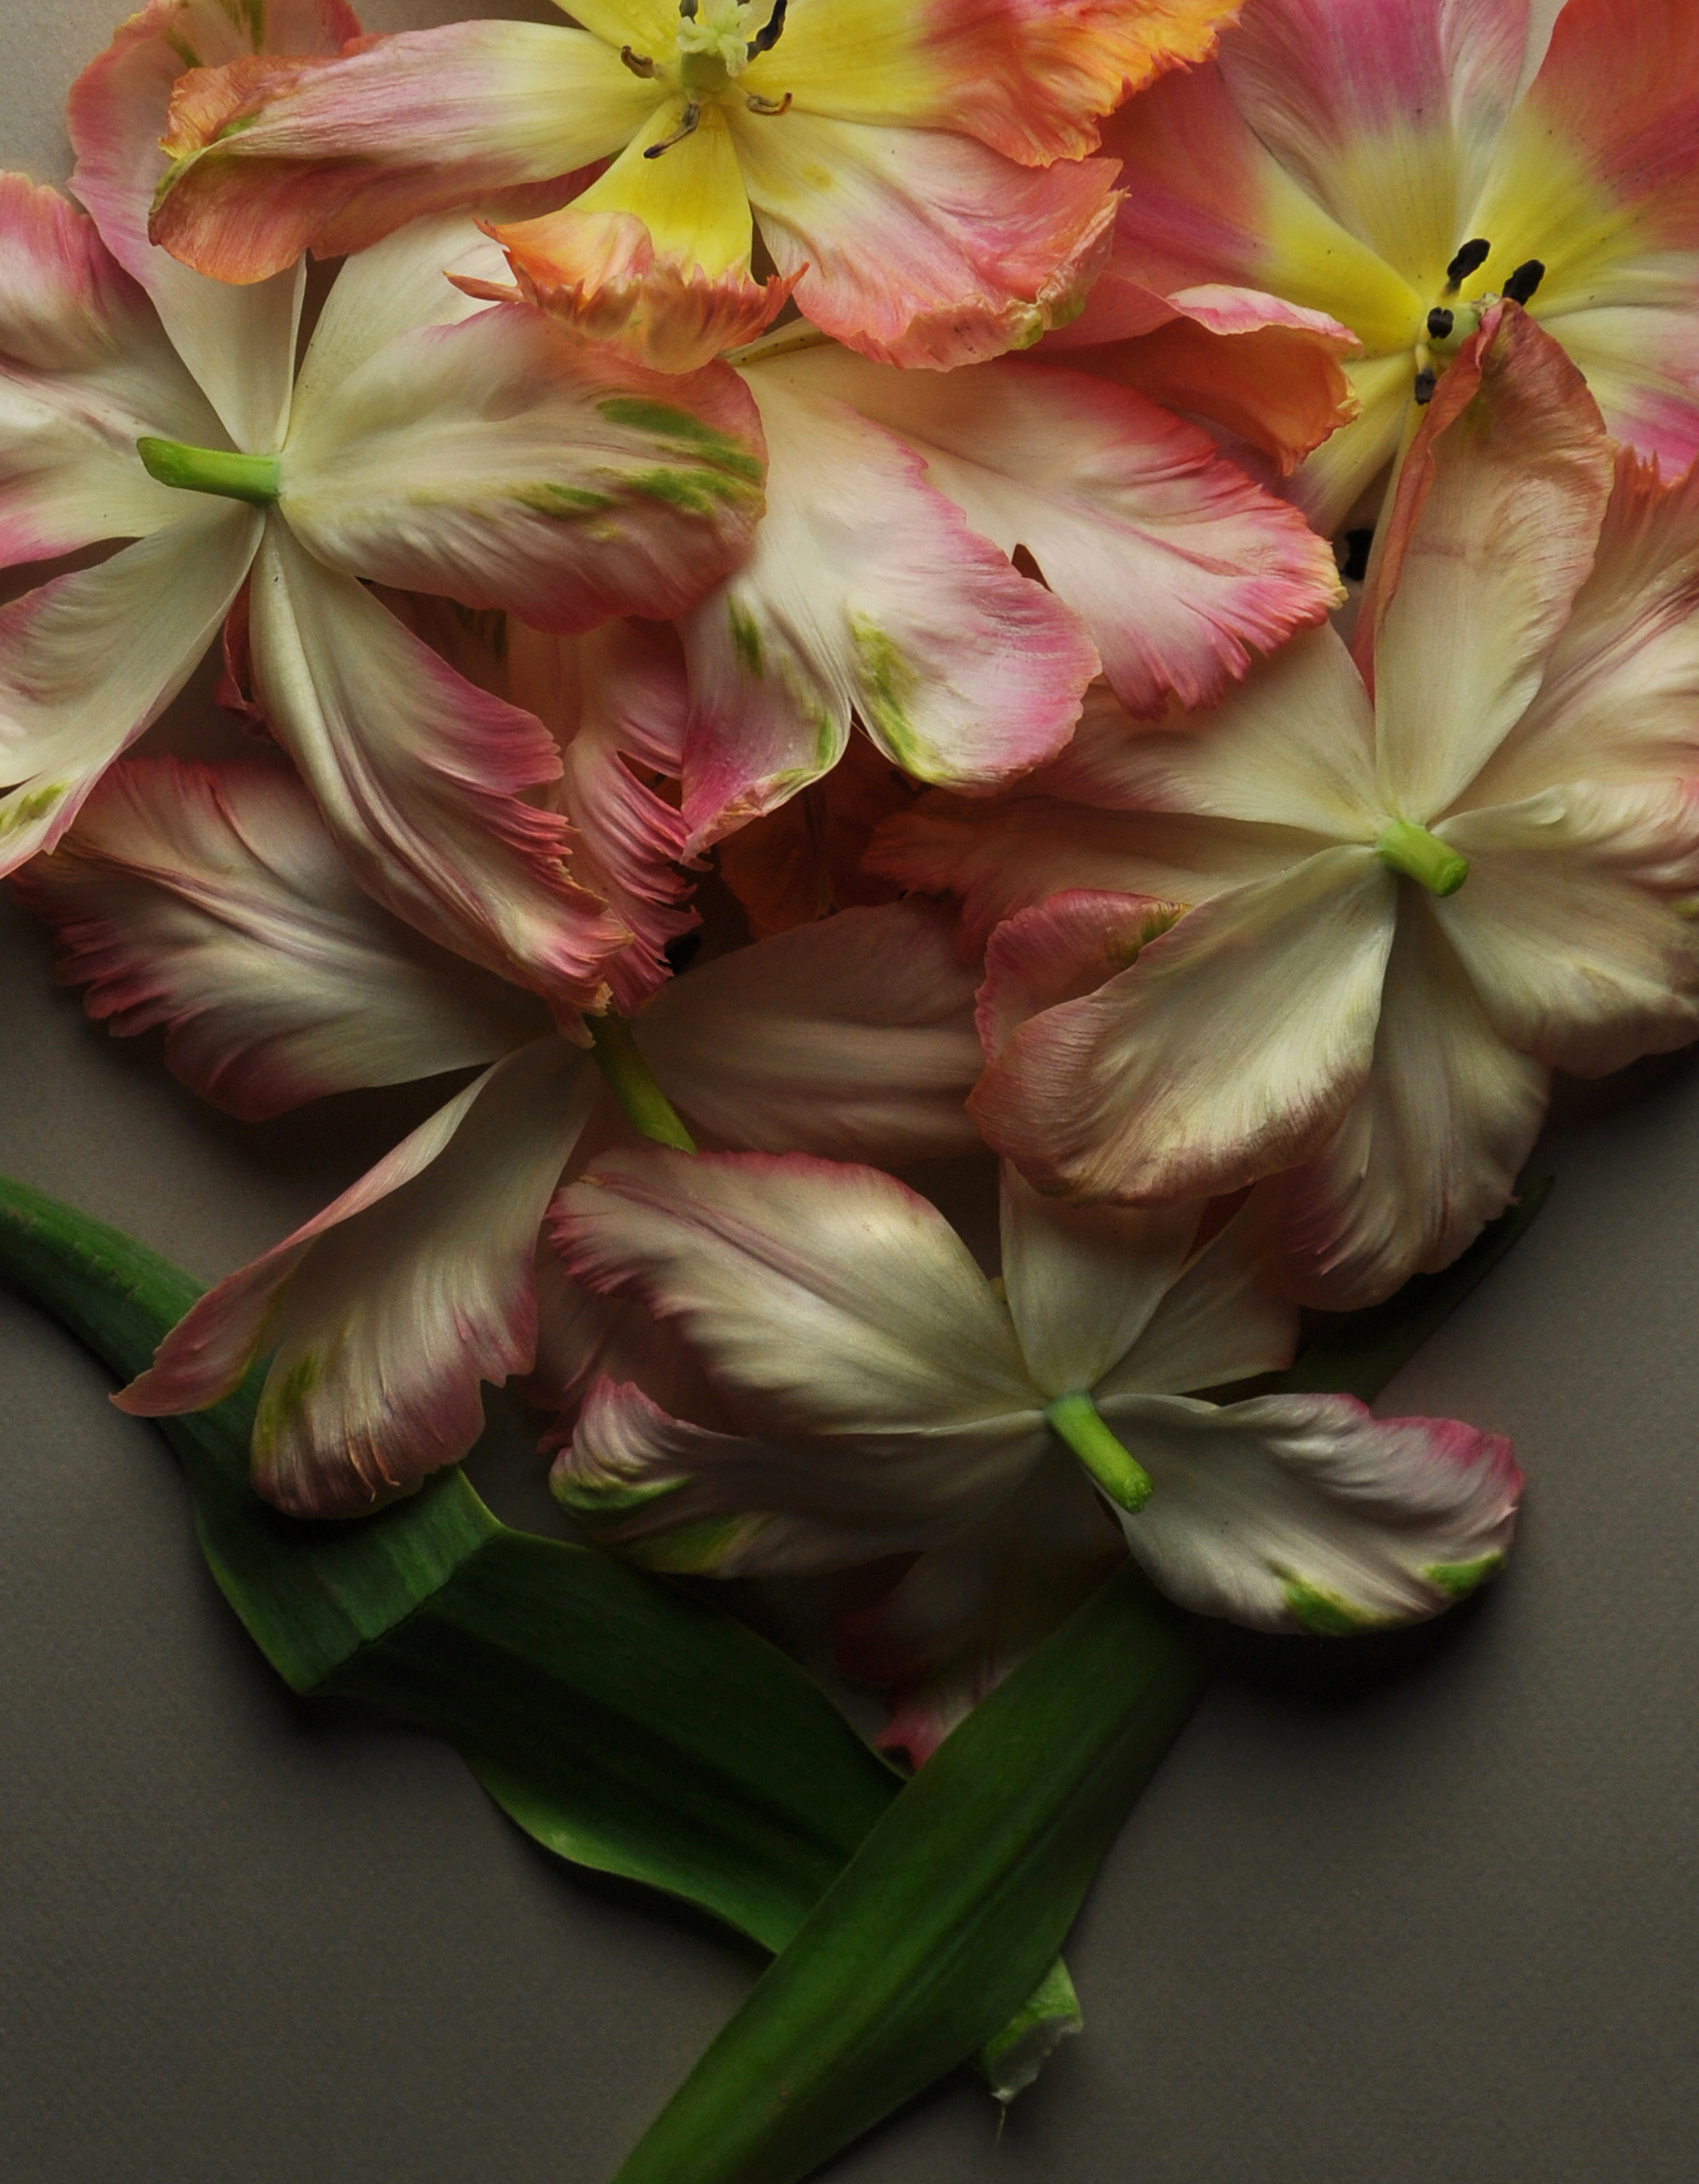 Varicolored Parrot Tulips No 5